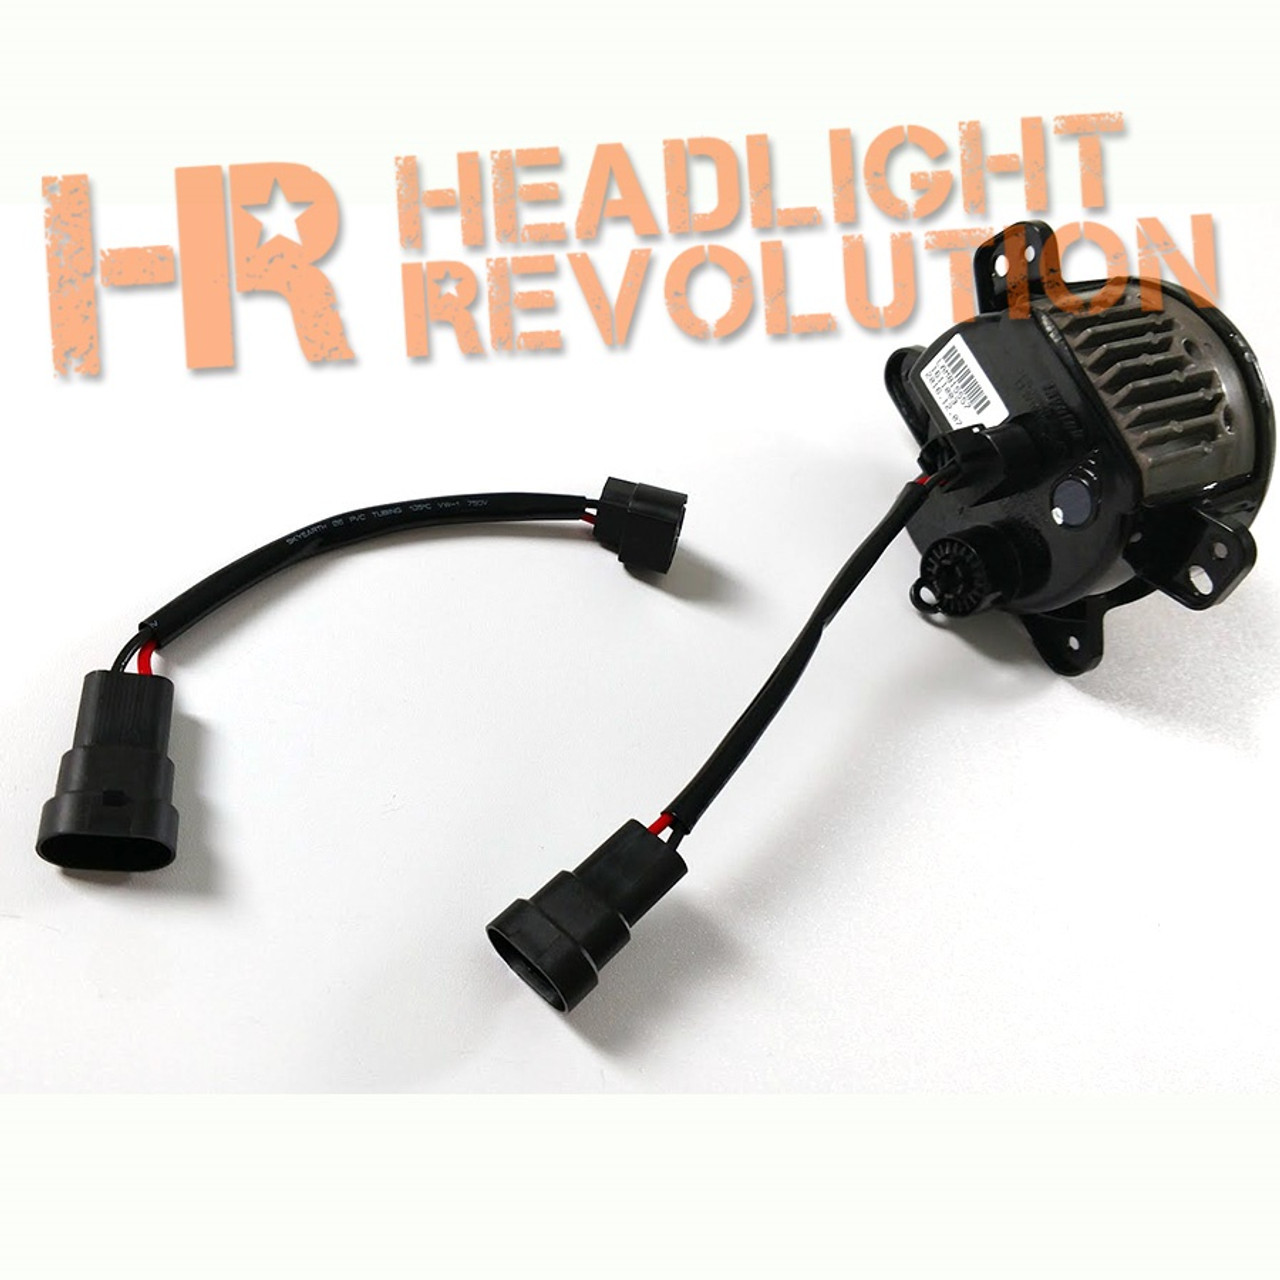 Headlight Revolution 9005 Male to 2504 Adapter Wire Harnesses for on